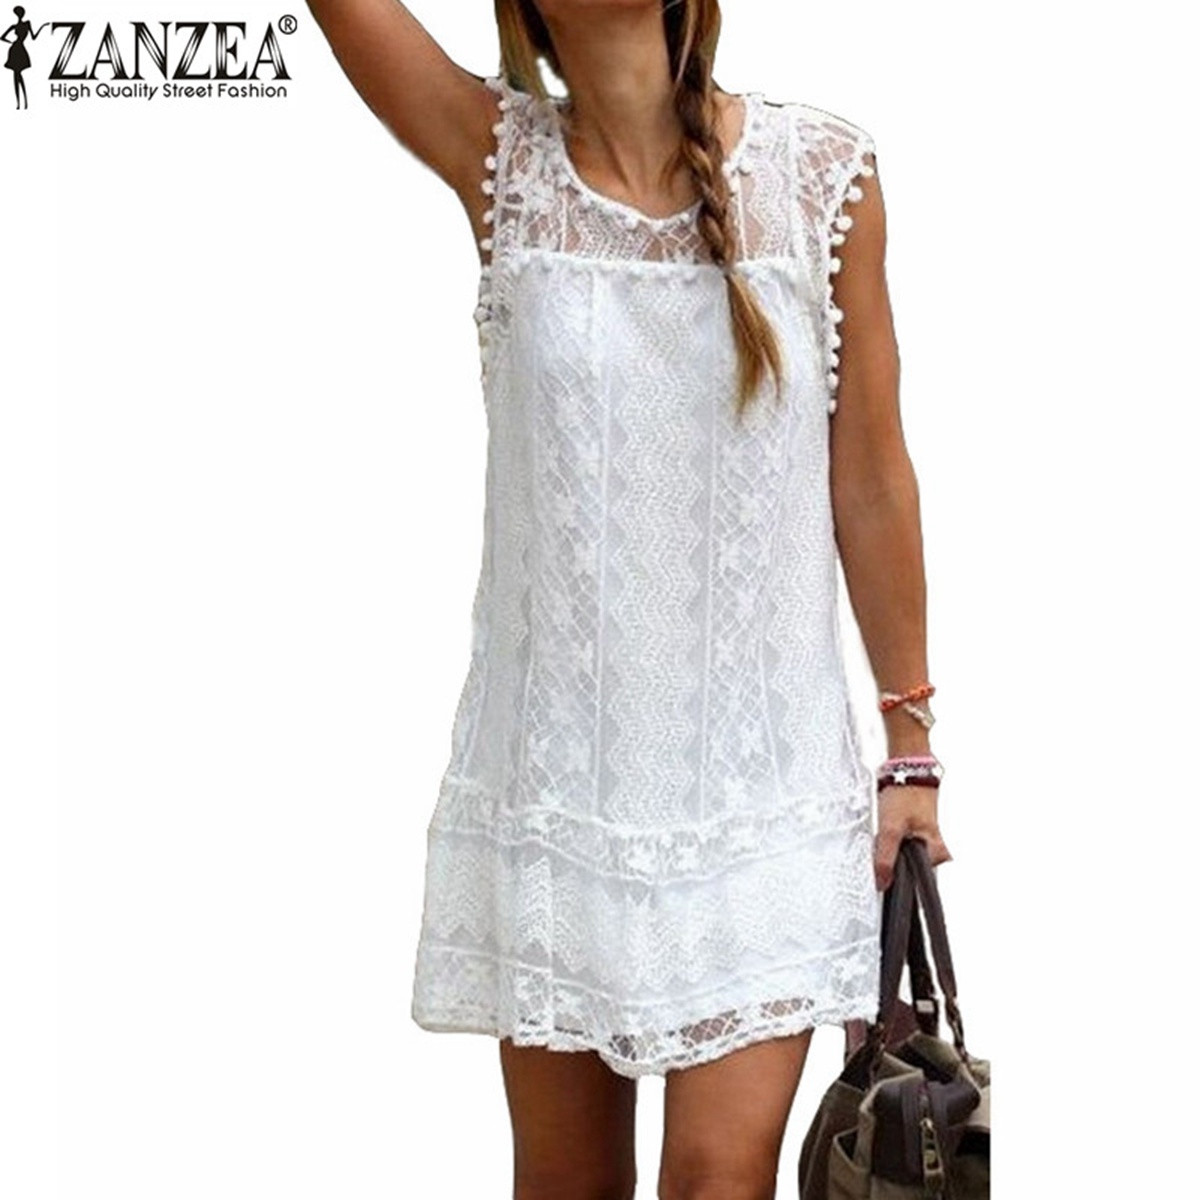 ZANZEA Vestidos 2019 Summer Elegant Women Casual Solid Short Sleeve Slim Lace Mini Dress Tops Ladies  White Dress Plus Size